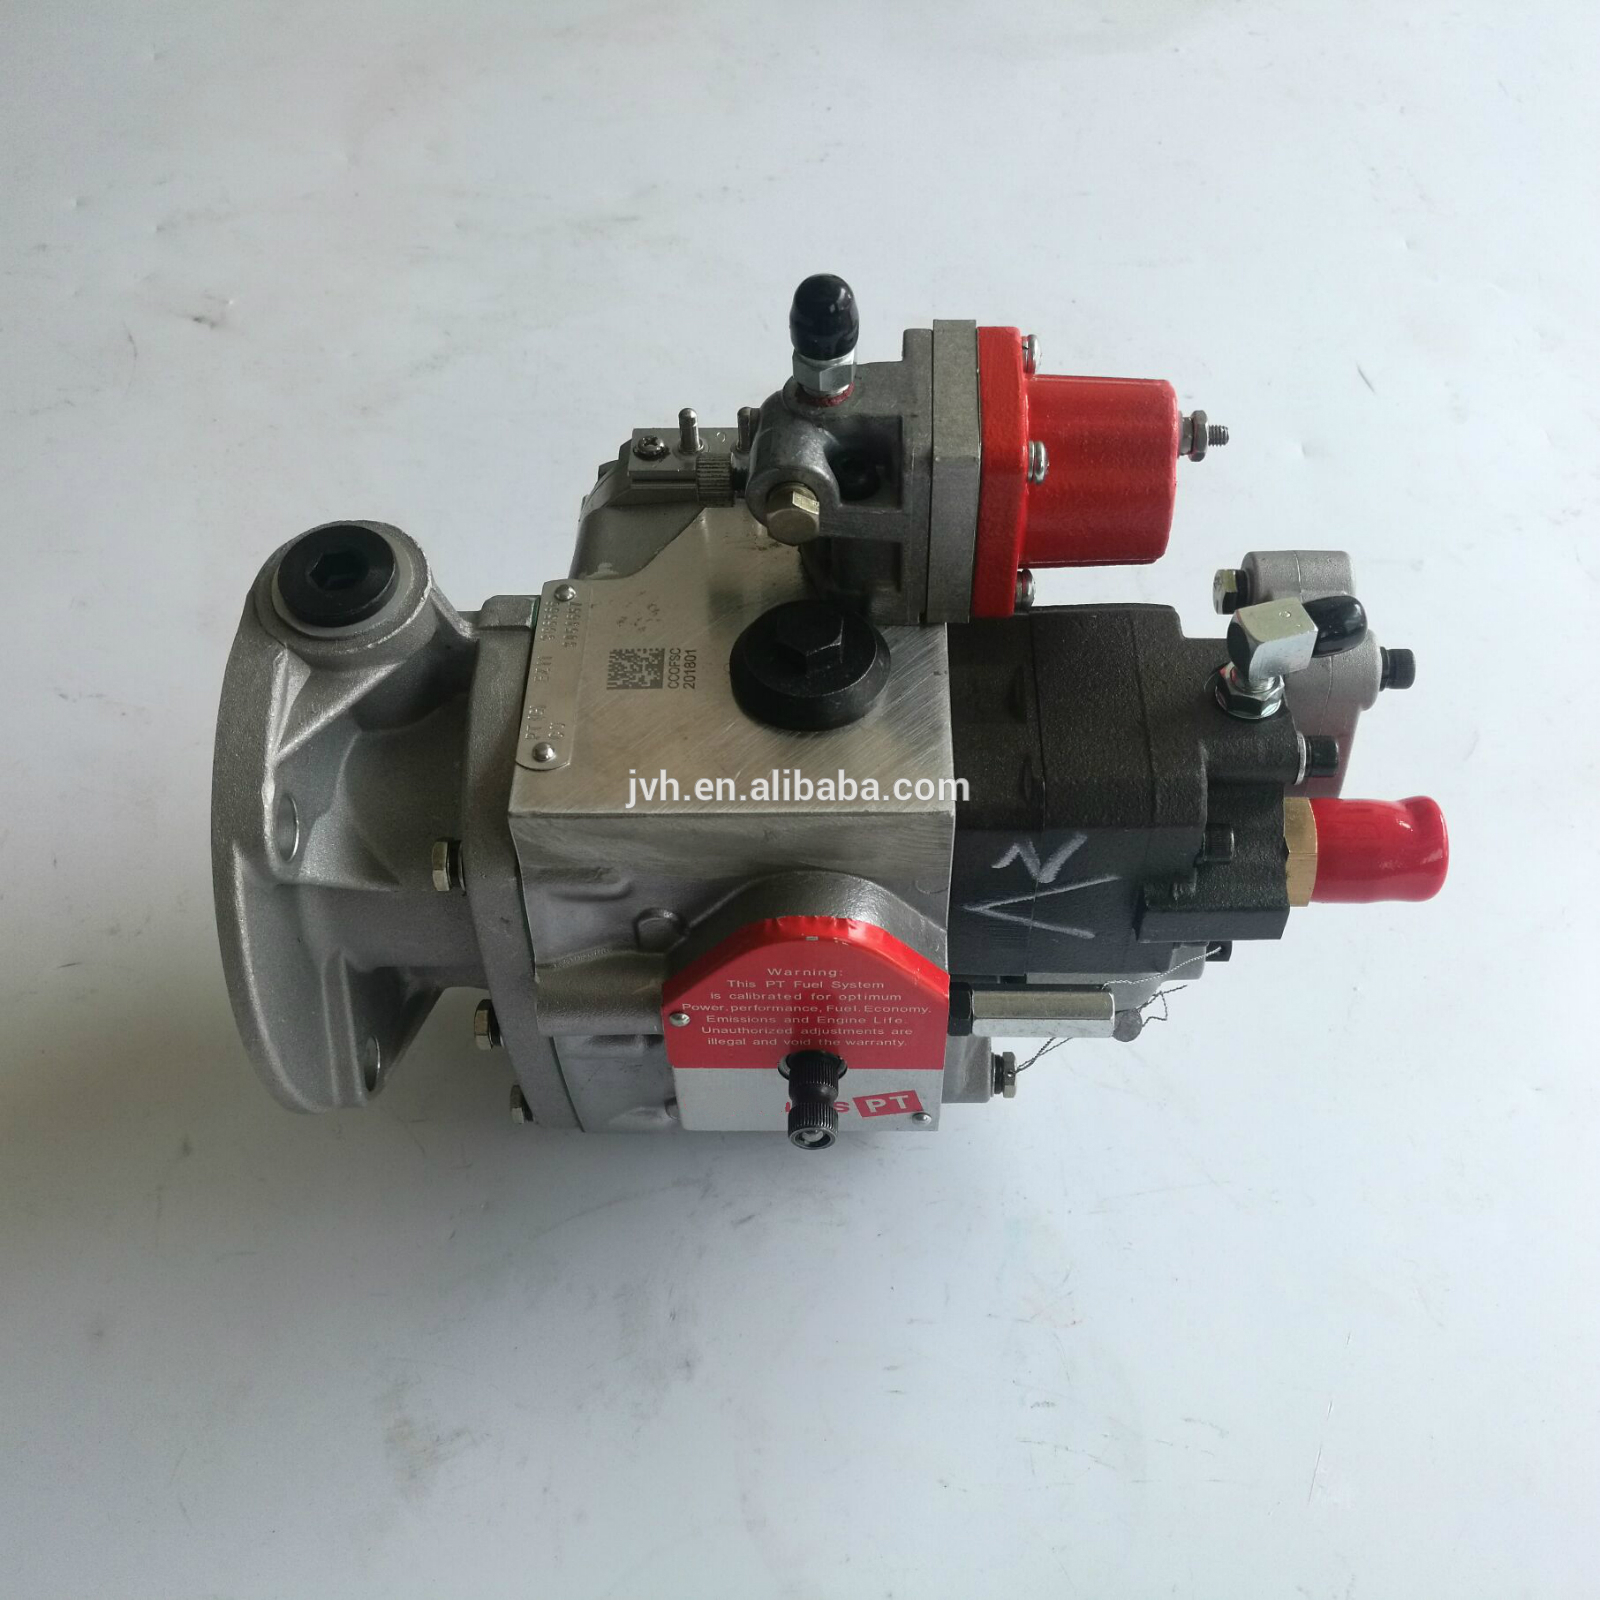 NTA855 Diesel Engine Spare Parts Fuel Injection Pump 4951452